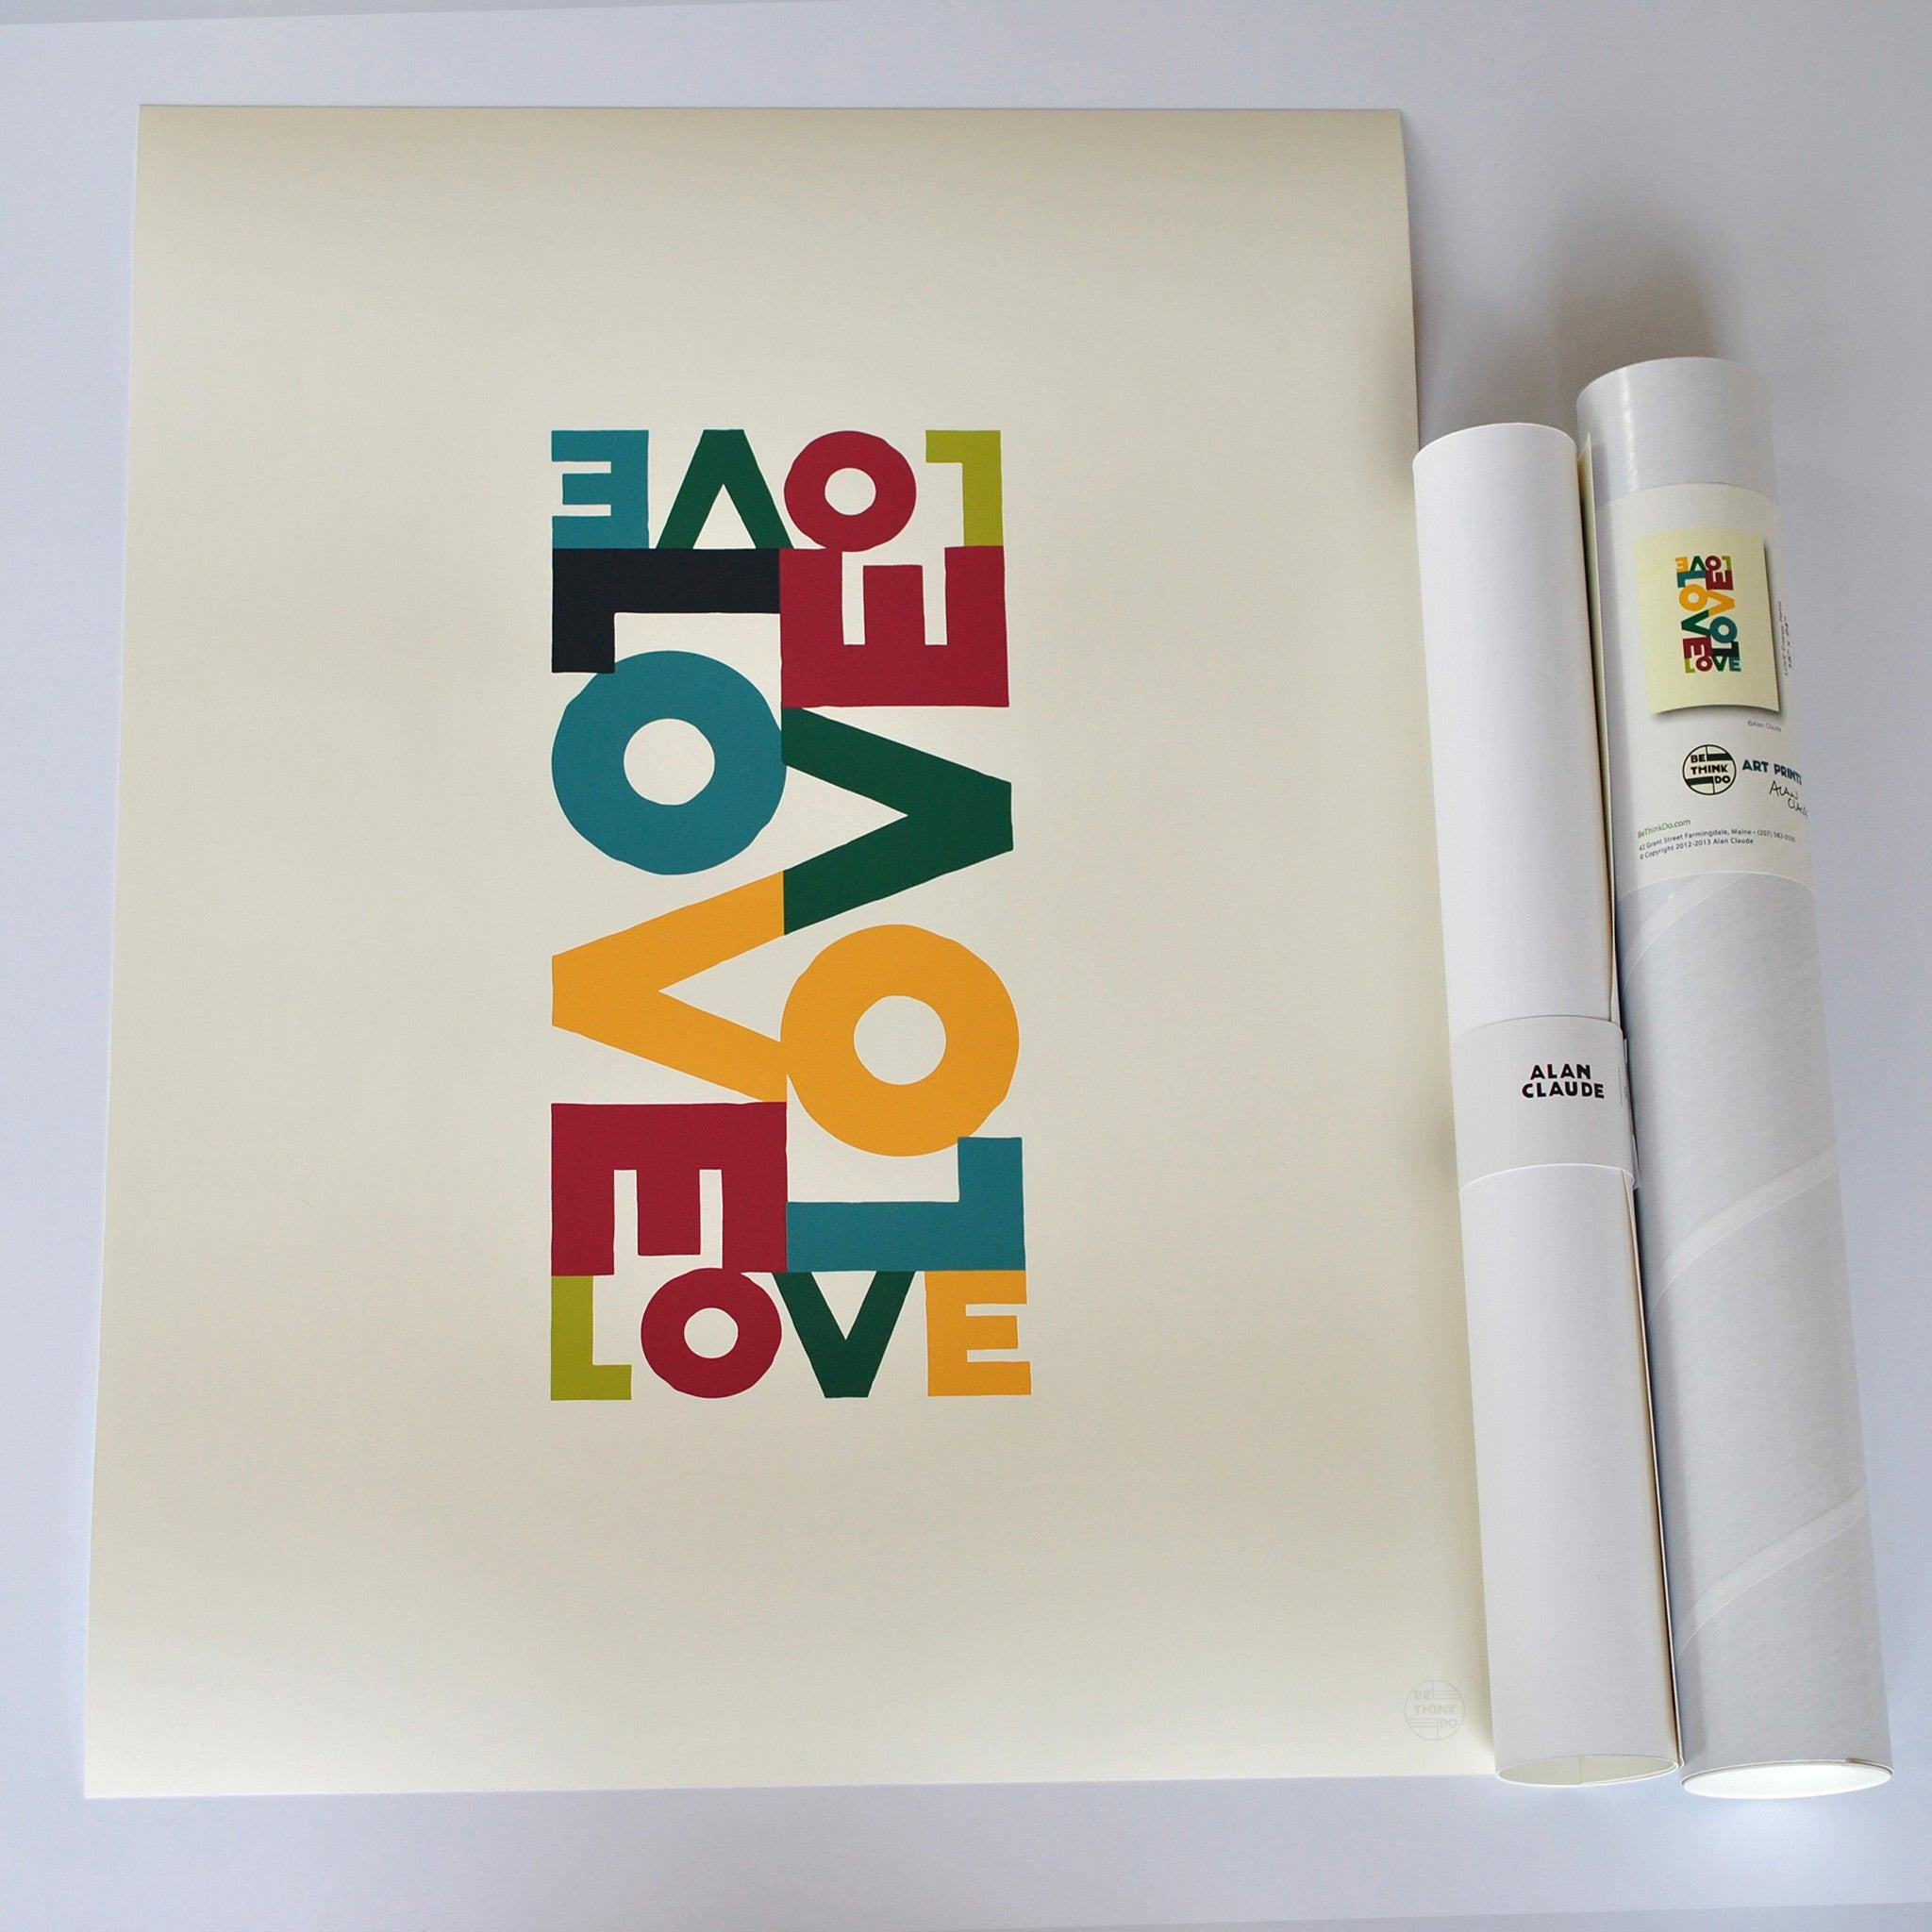 "Love Energy Retro Art Print 18"" x 24"" Wall Poster"